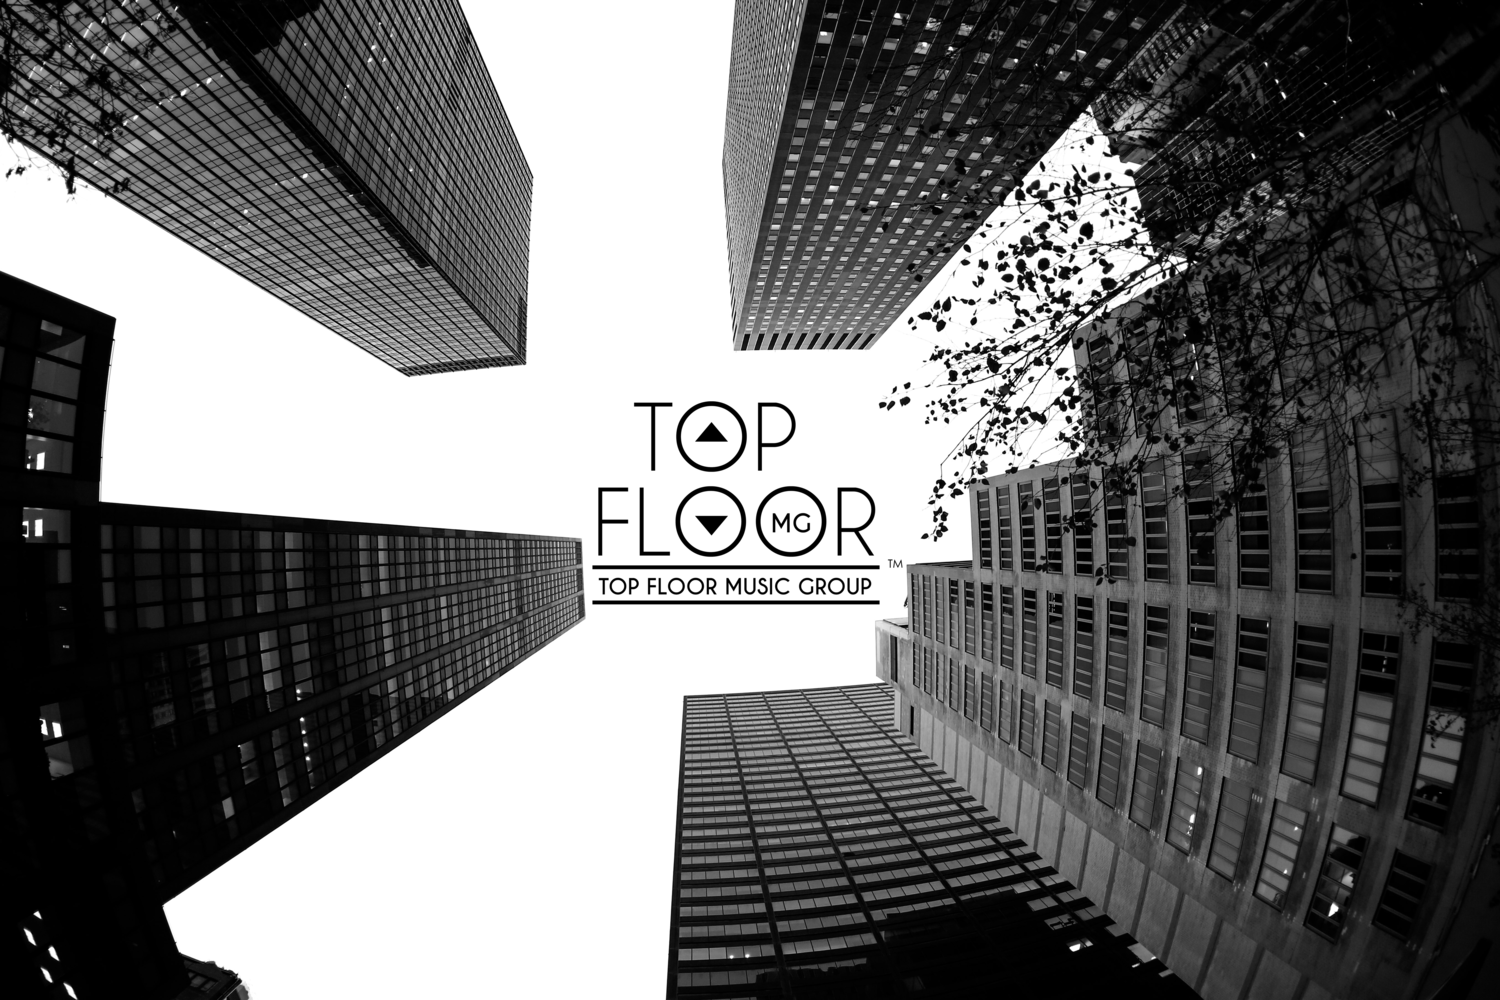 TOP FLOOR MUSIC GROUP